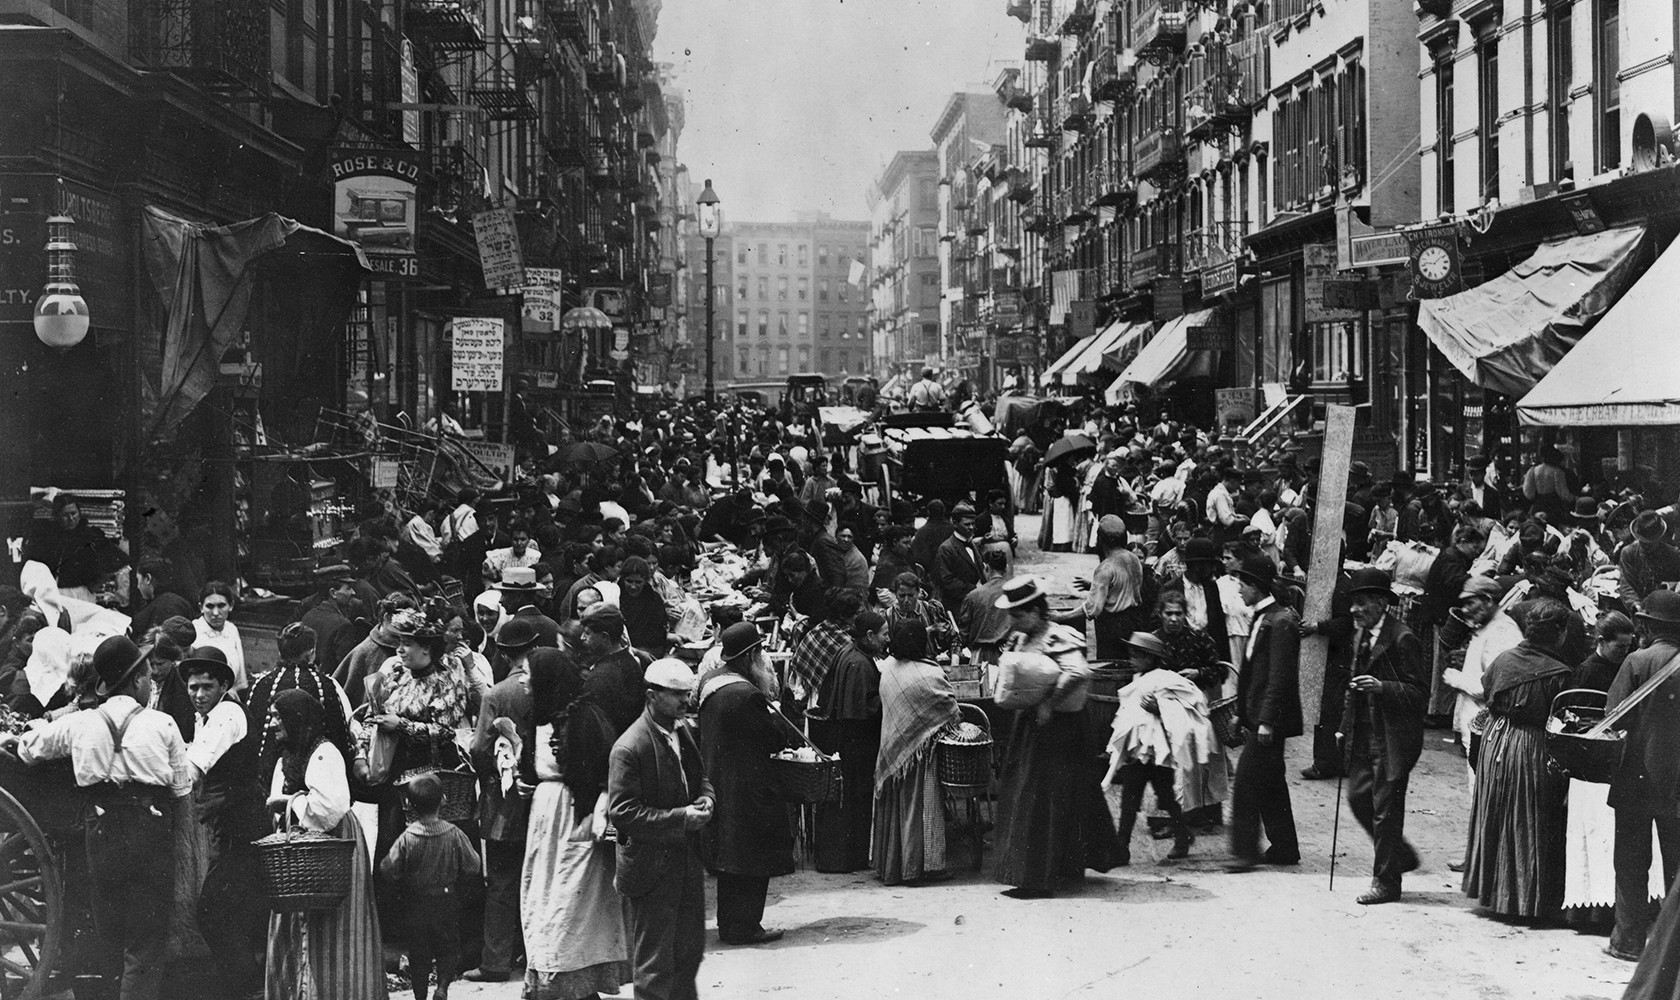 Orchard Street late 1800s.jpeg